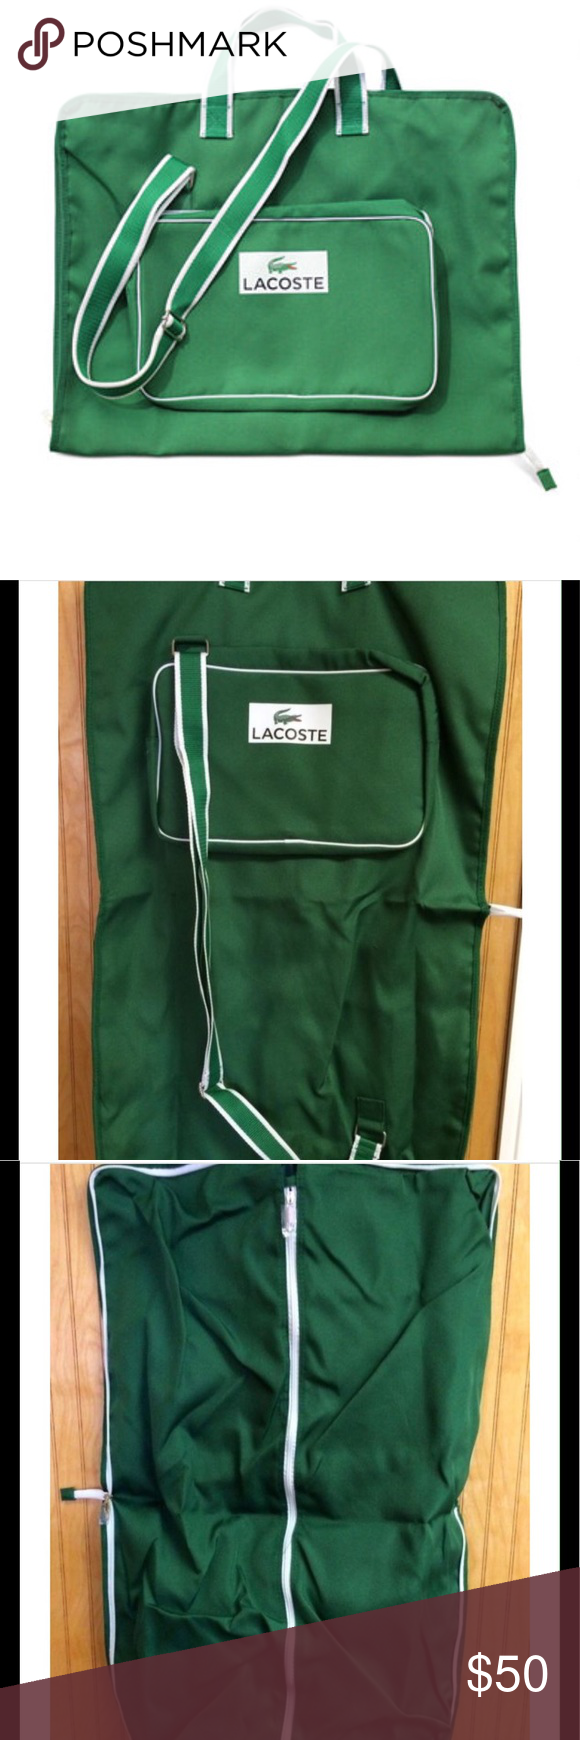 Lacoste Logo Splashed Garment Bag Brand New Unzip Once For A